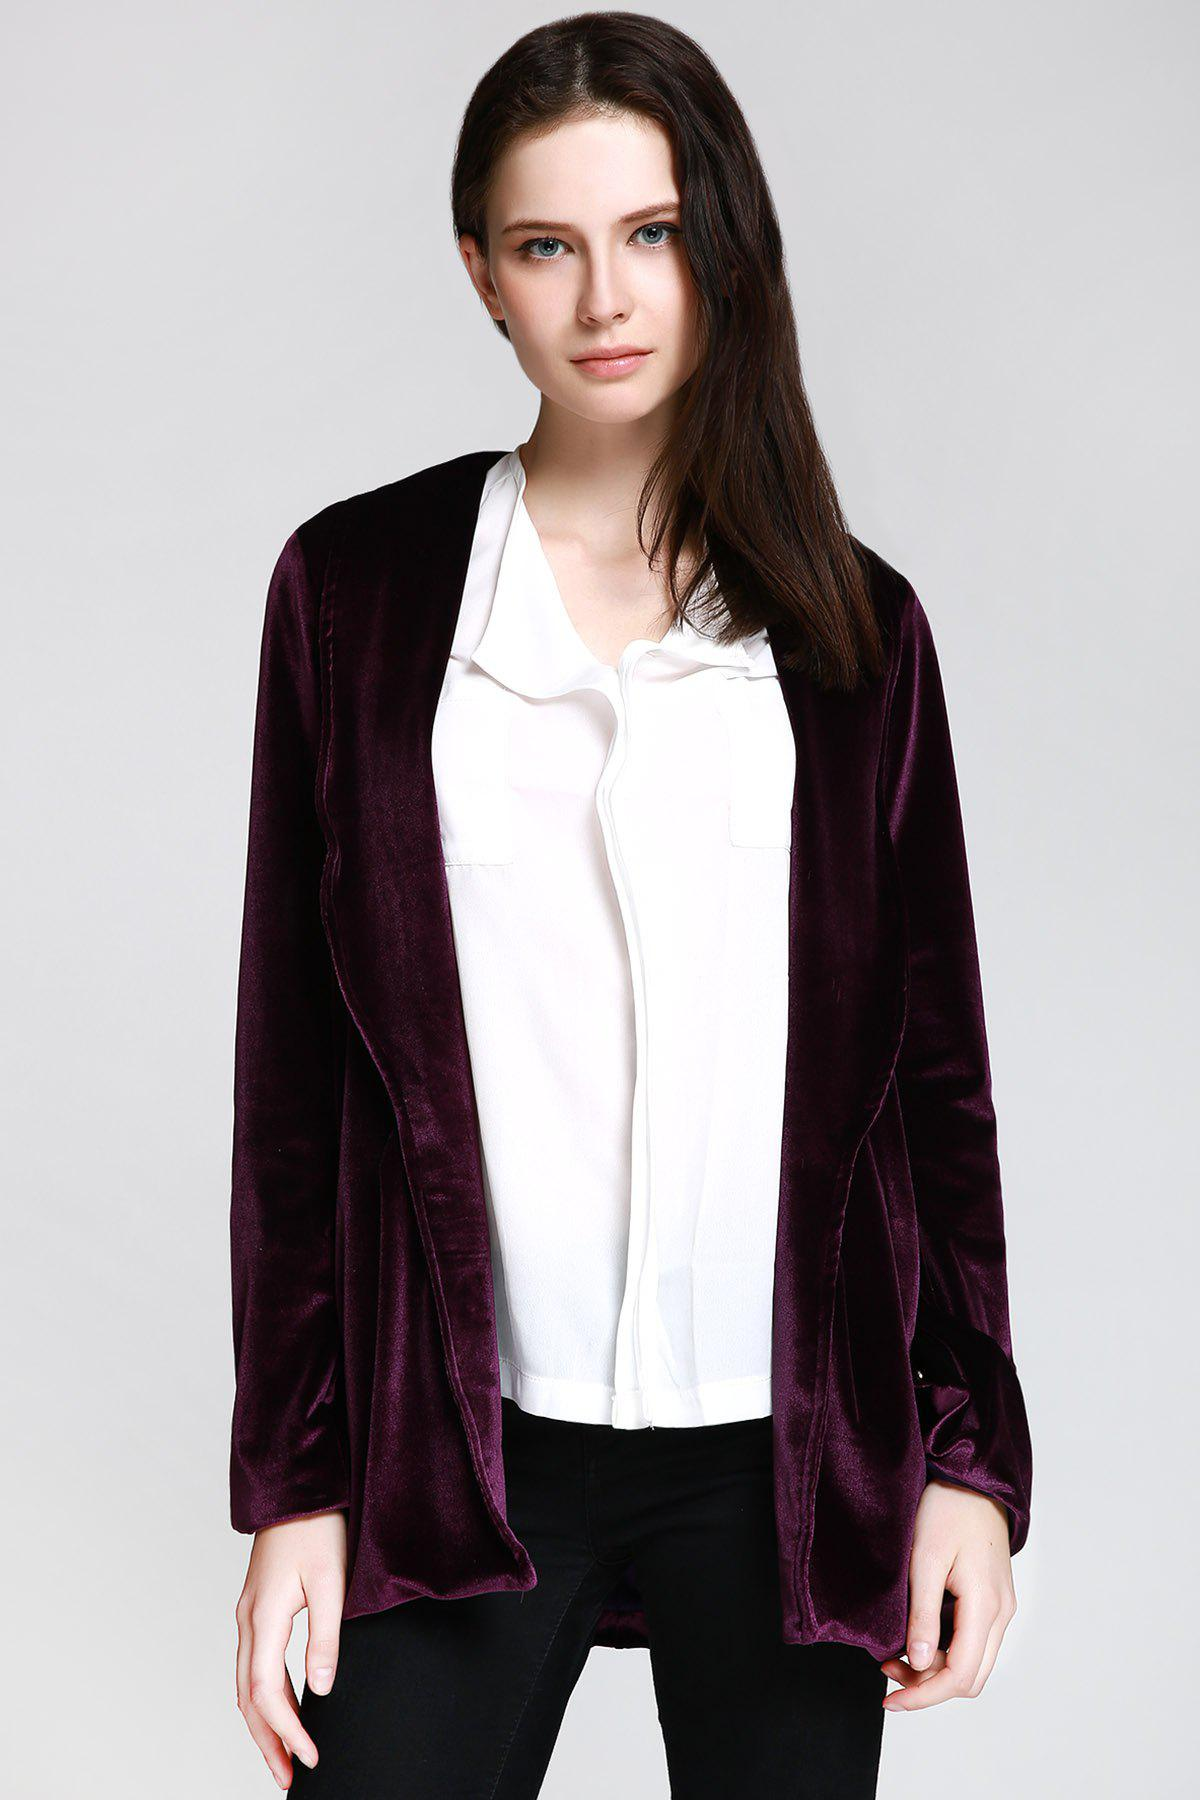 Stylish Shawl Collar Long Sleeve Deep Purple Women's Jacket - DEEP PURPLE S